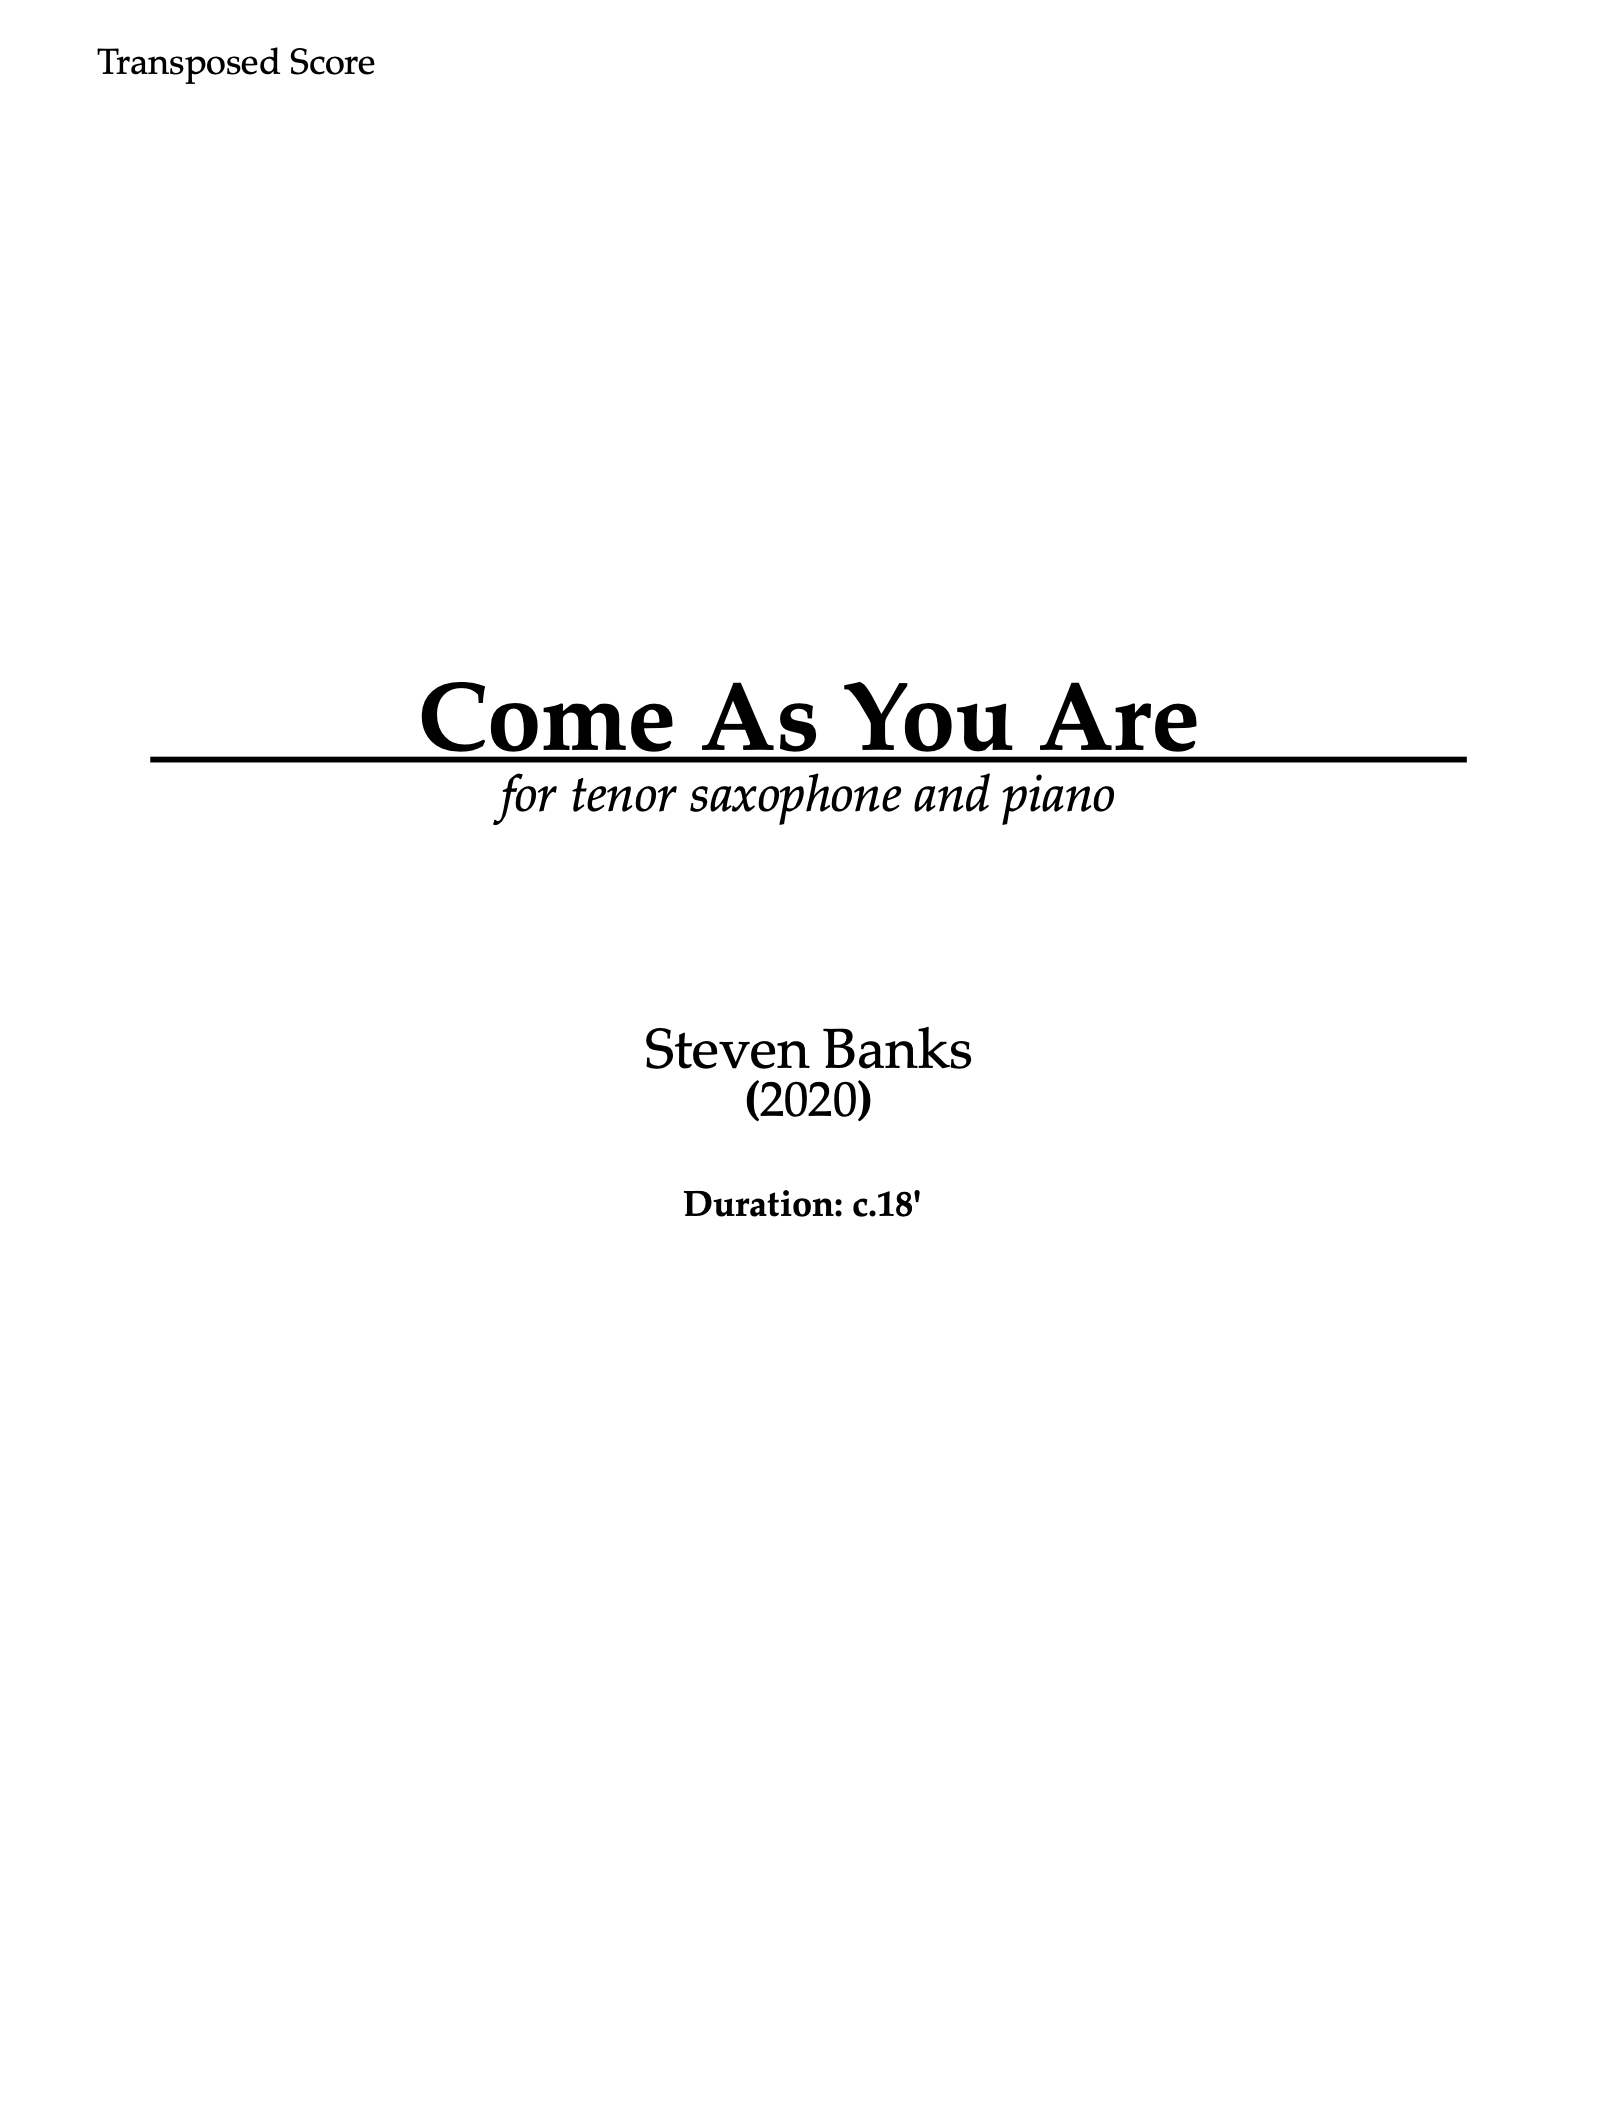 Come As You Are by Steven Banks